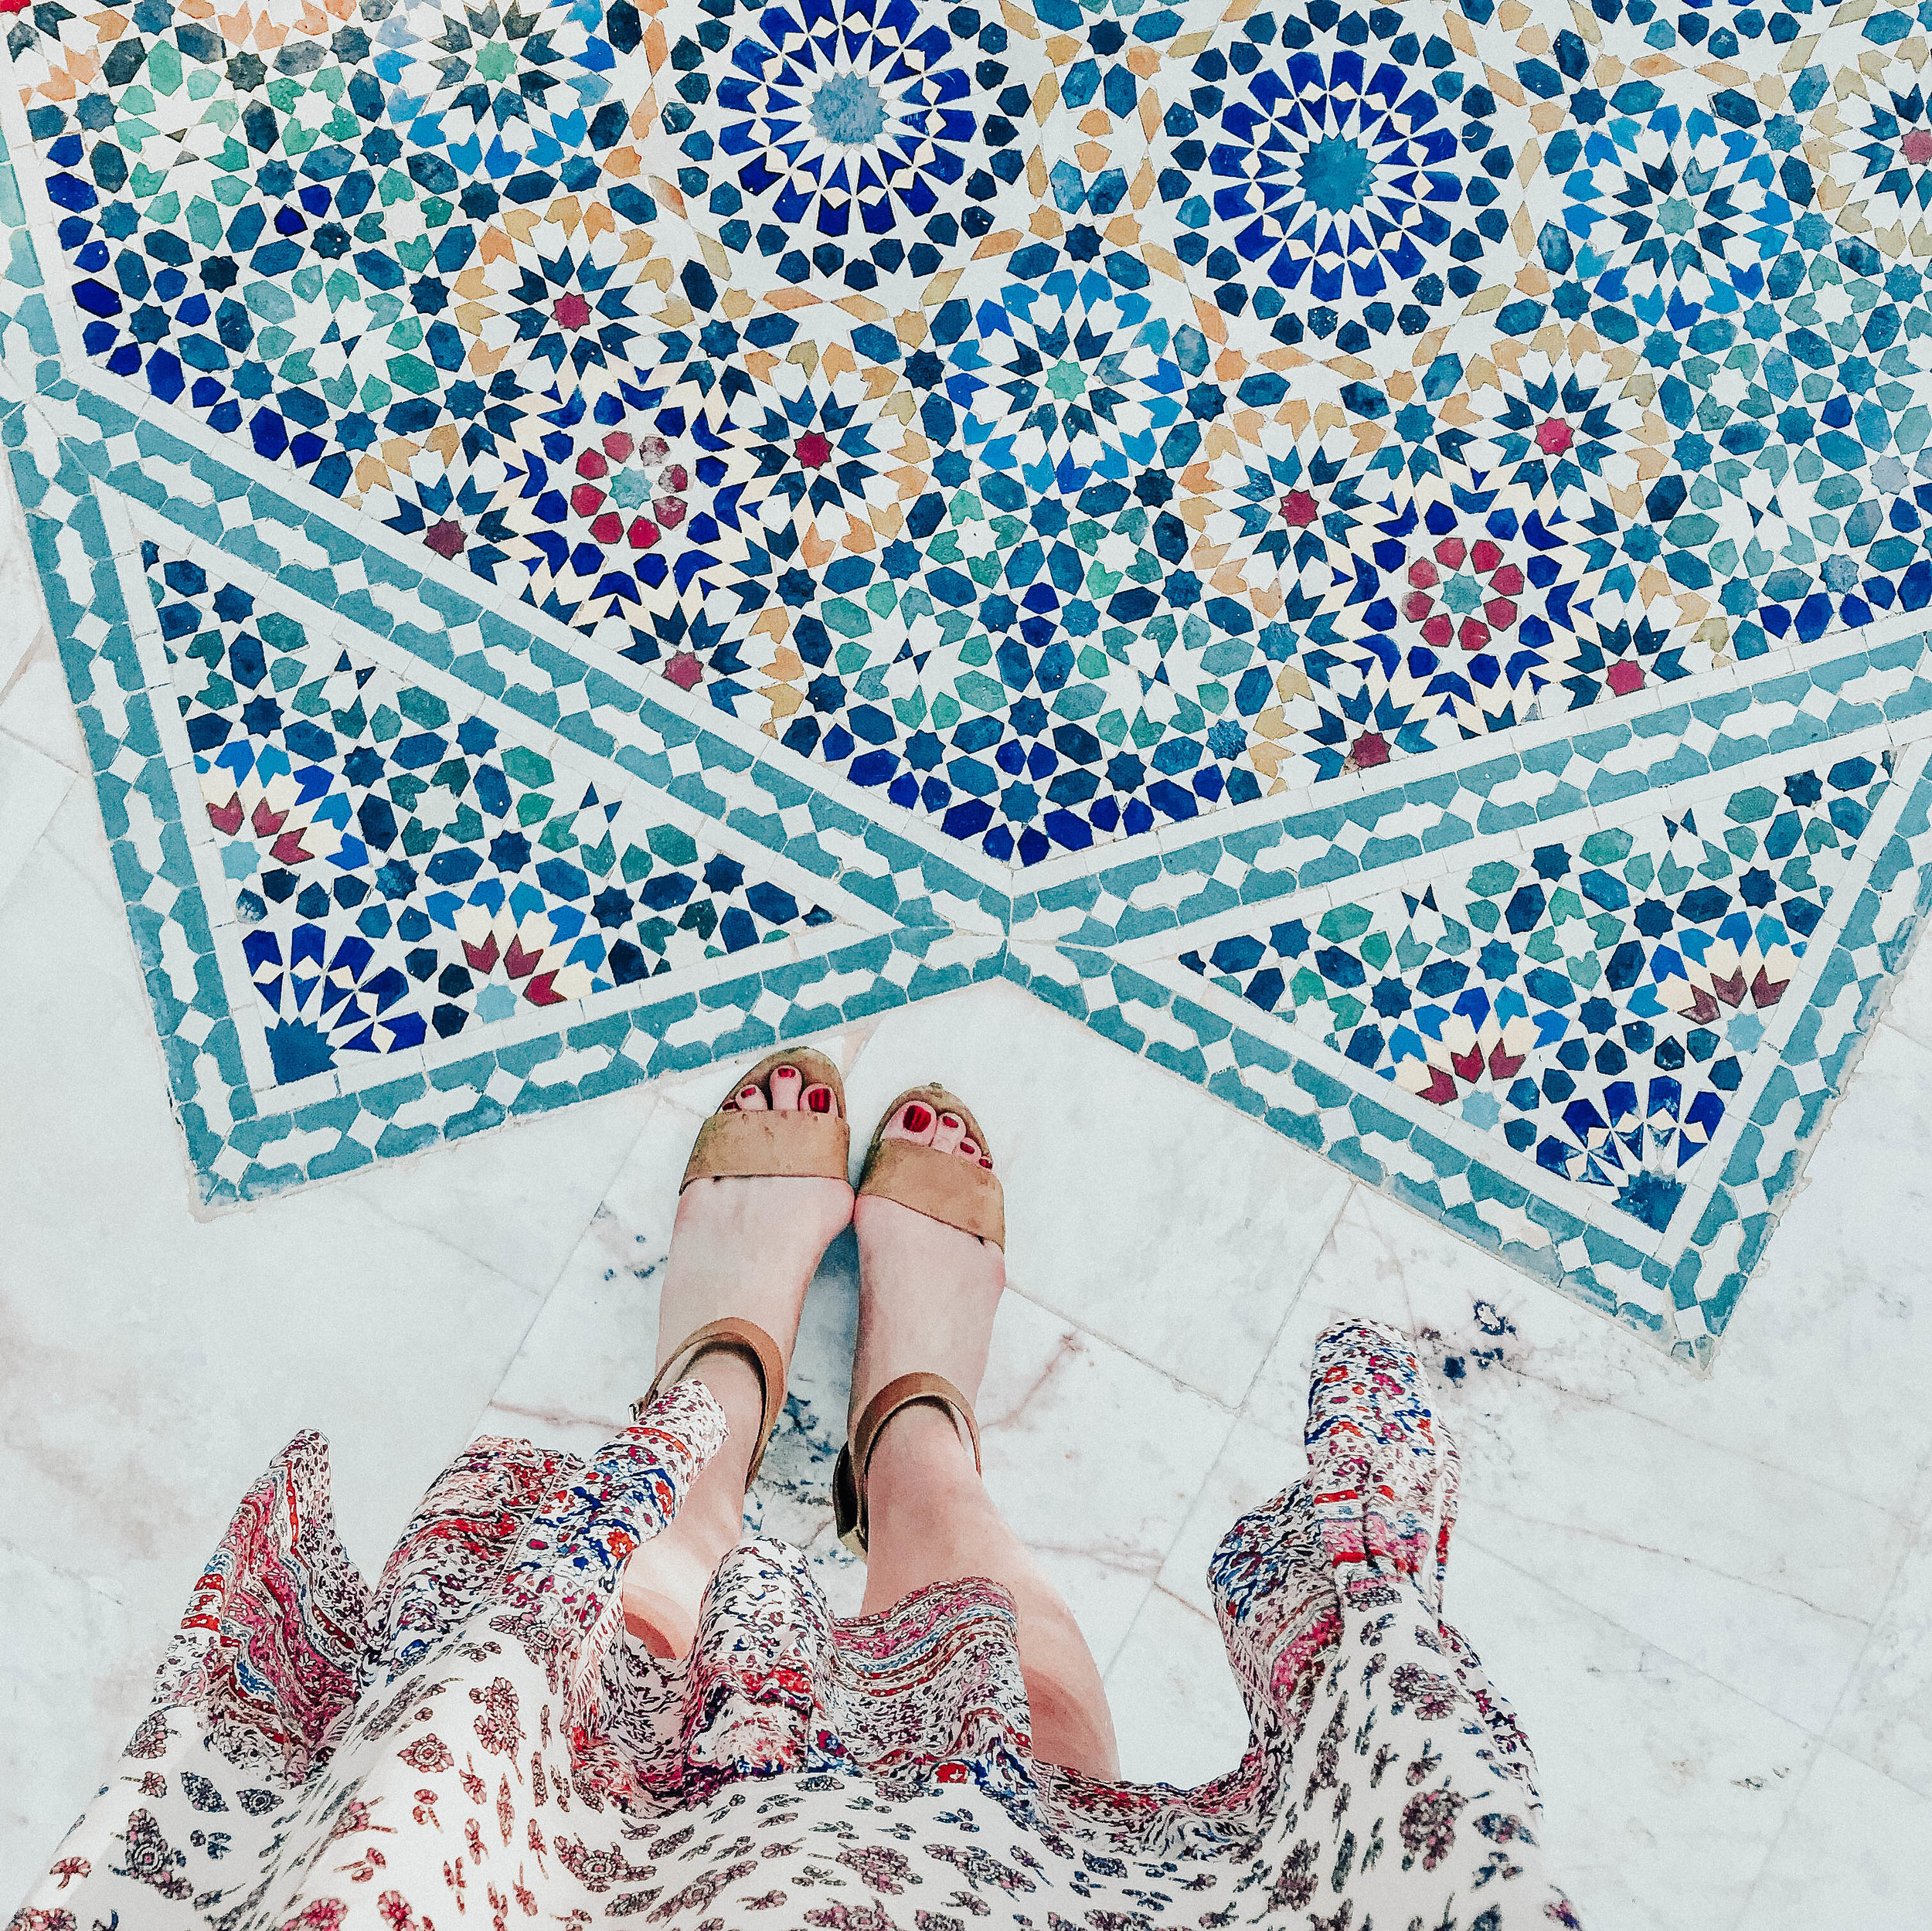 Tiles in Marrakech, Morocco